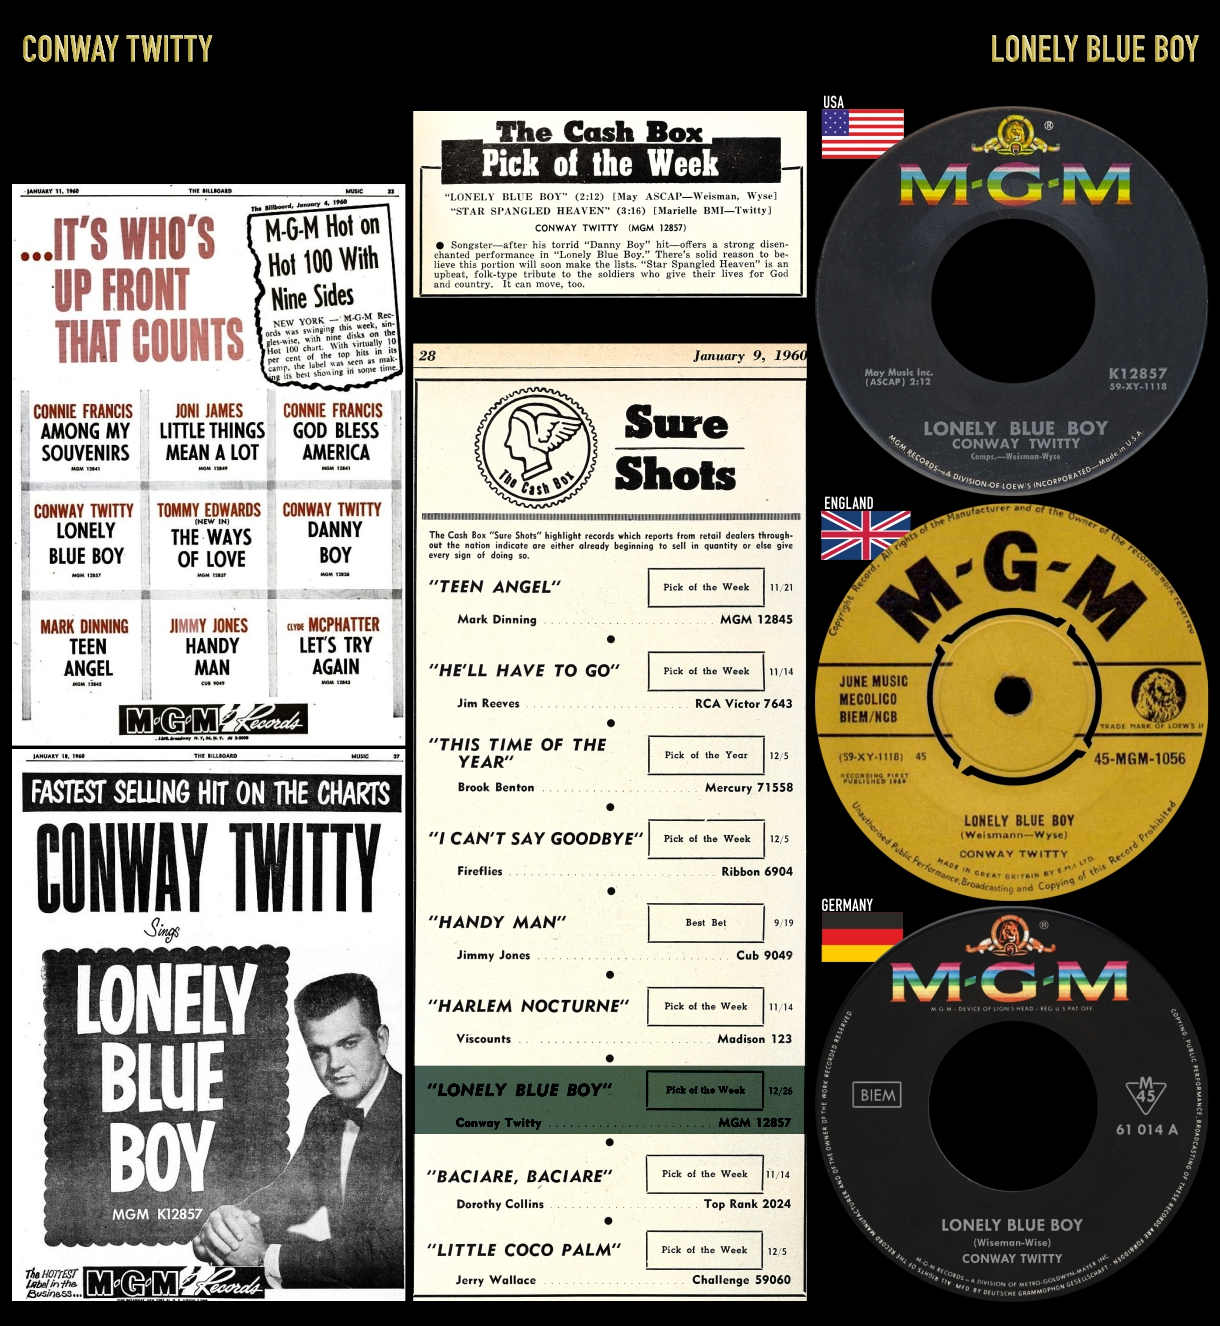 591216_Conway Twitty_Lonely Blue Boy